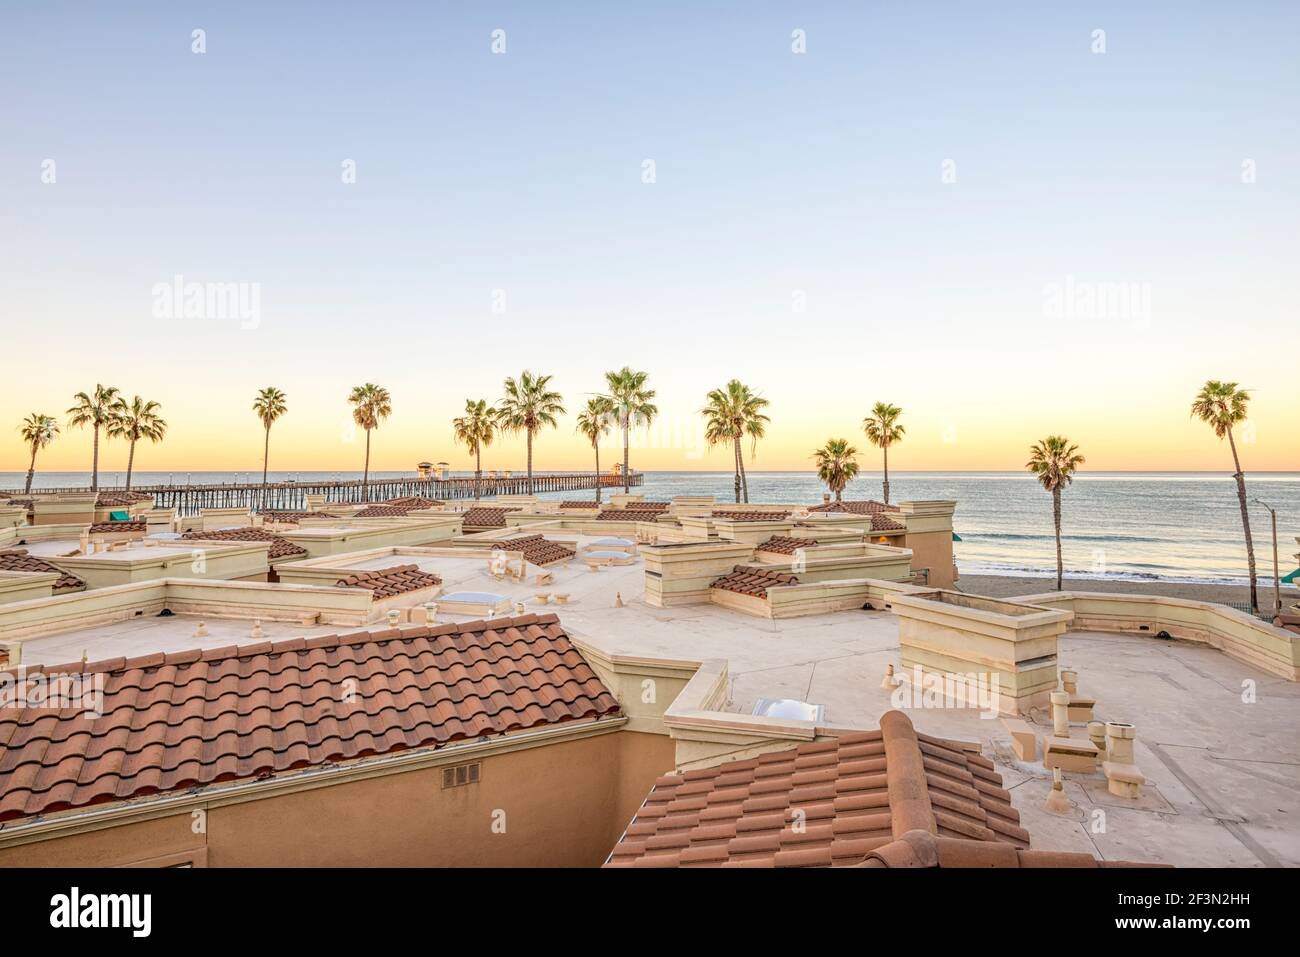 View of the coast on a winter morning. Oceanside, California, USA. Stock Photo